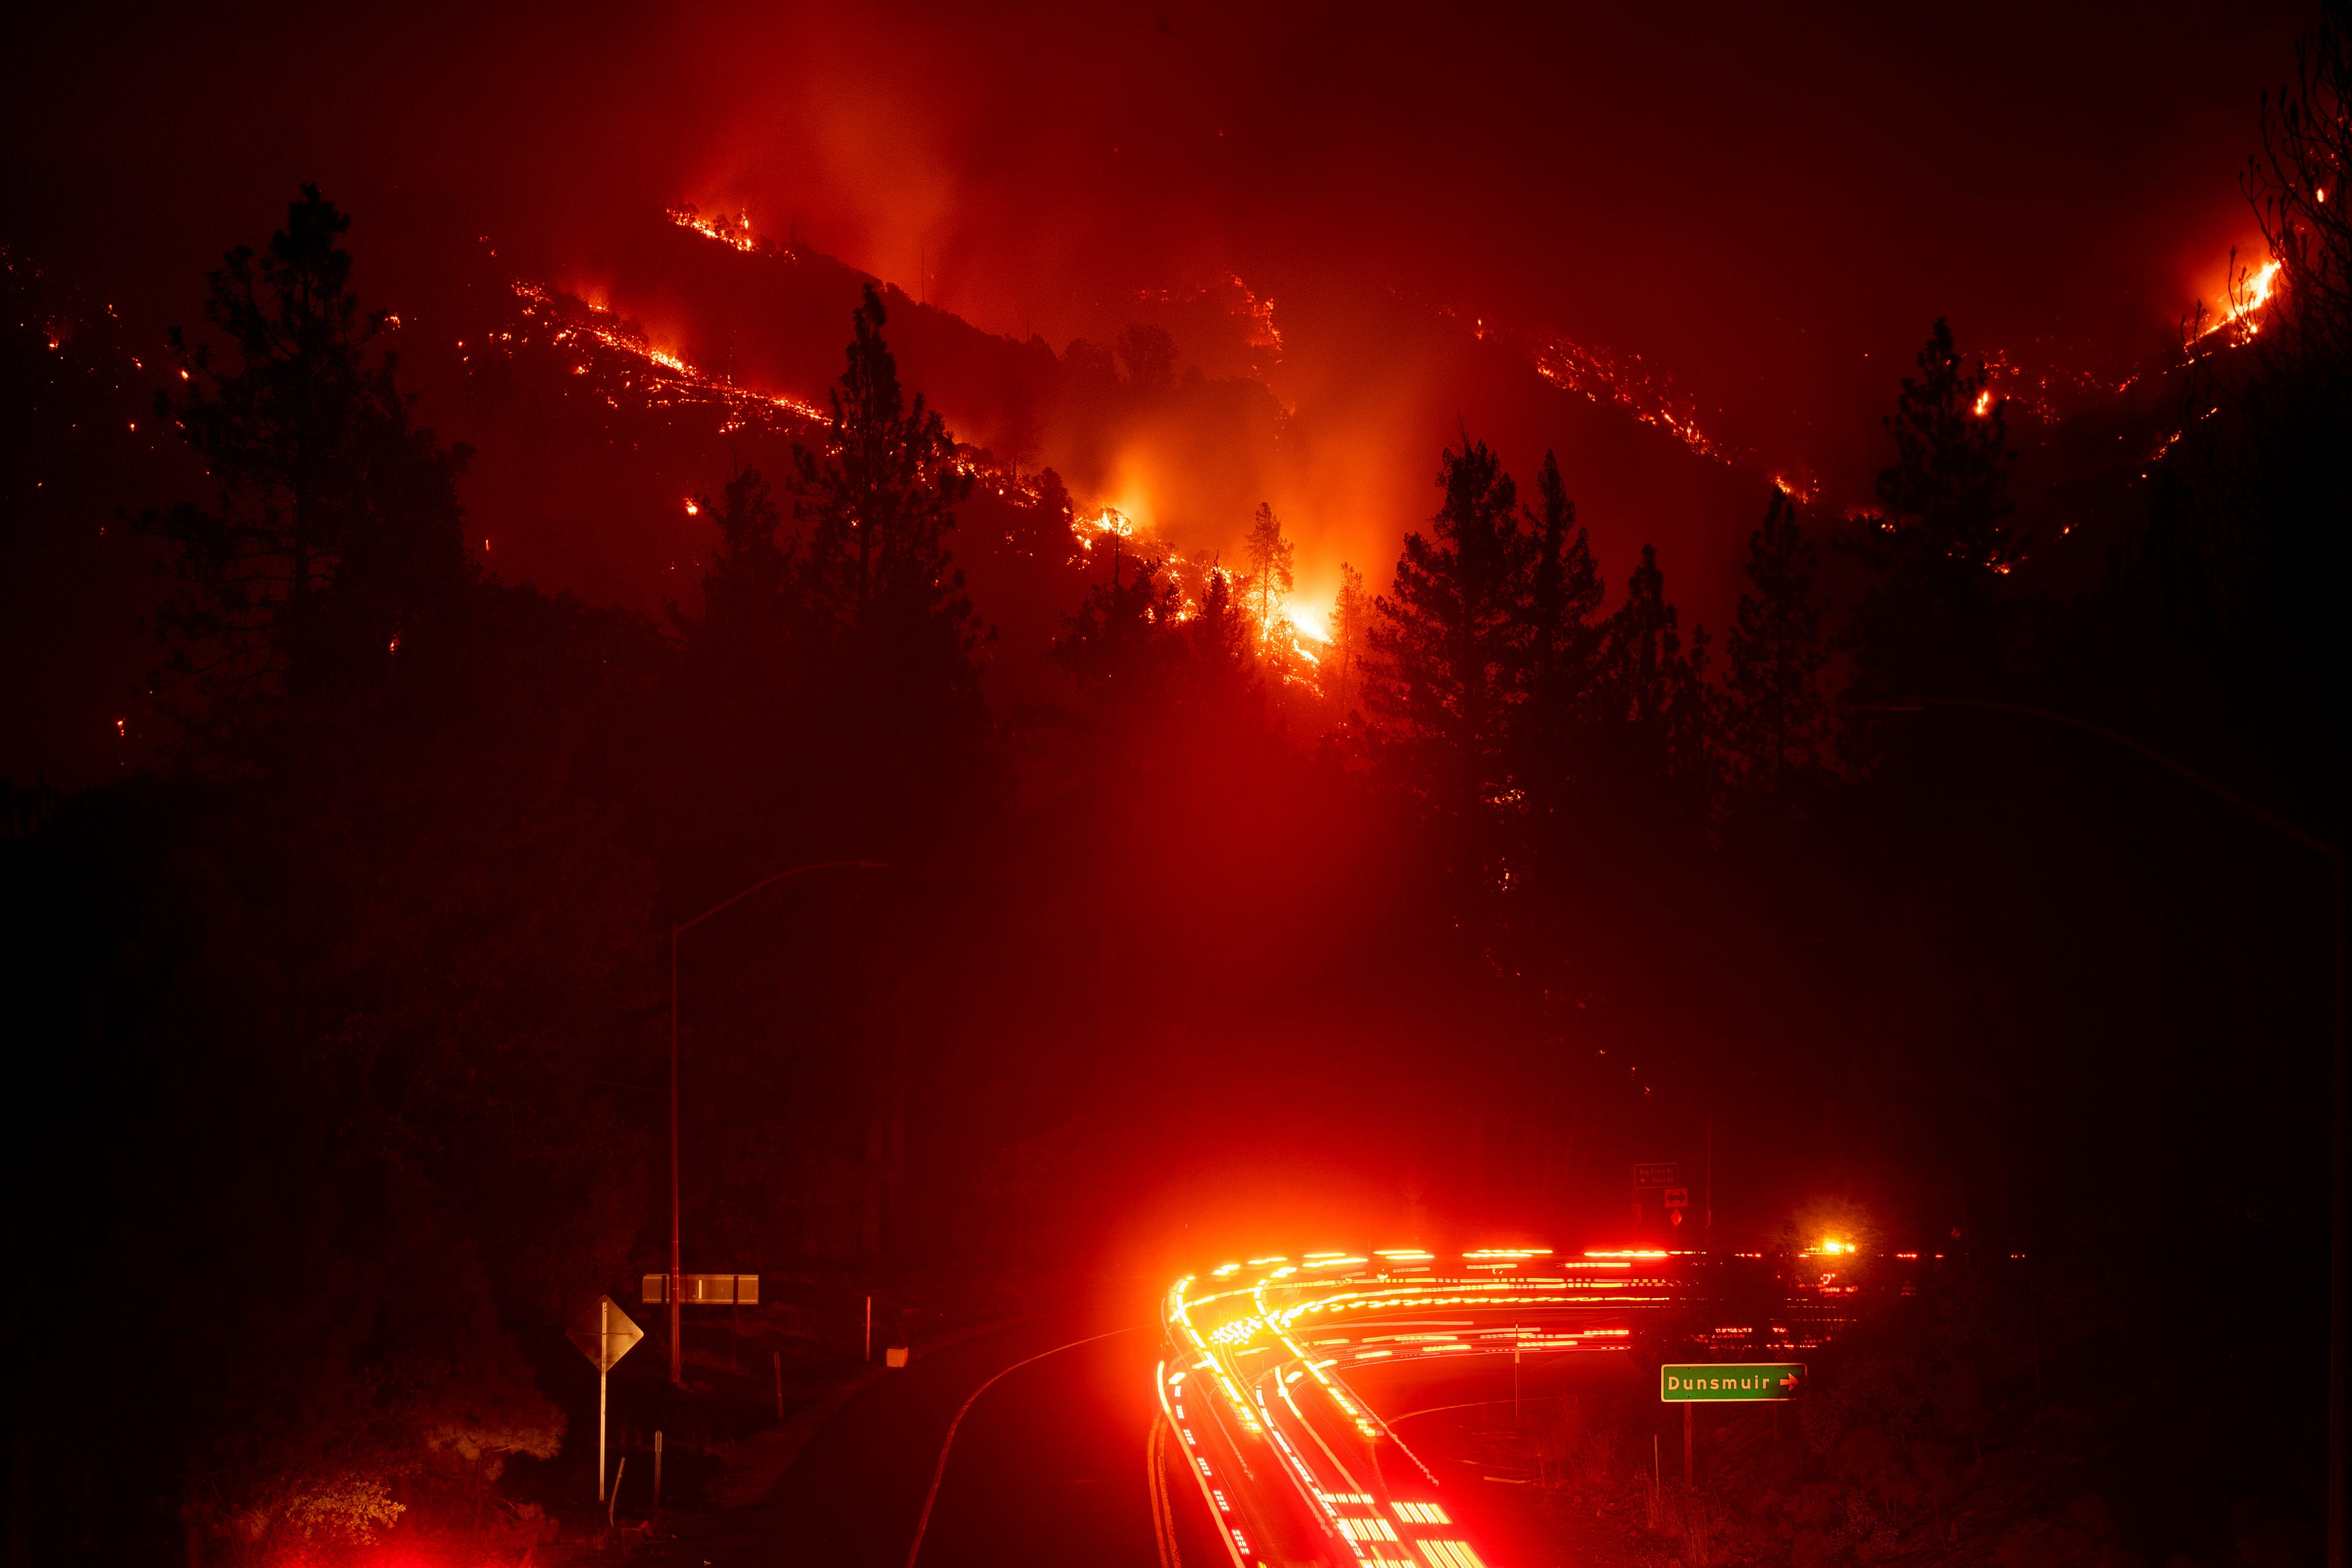 Insurance claims from deadly 2018 California wildfires top $11.4B